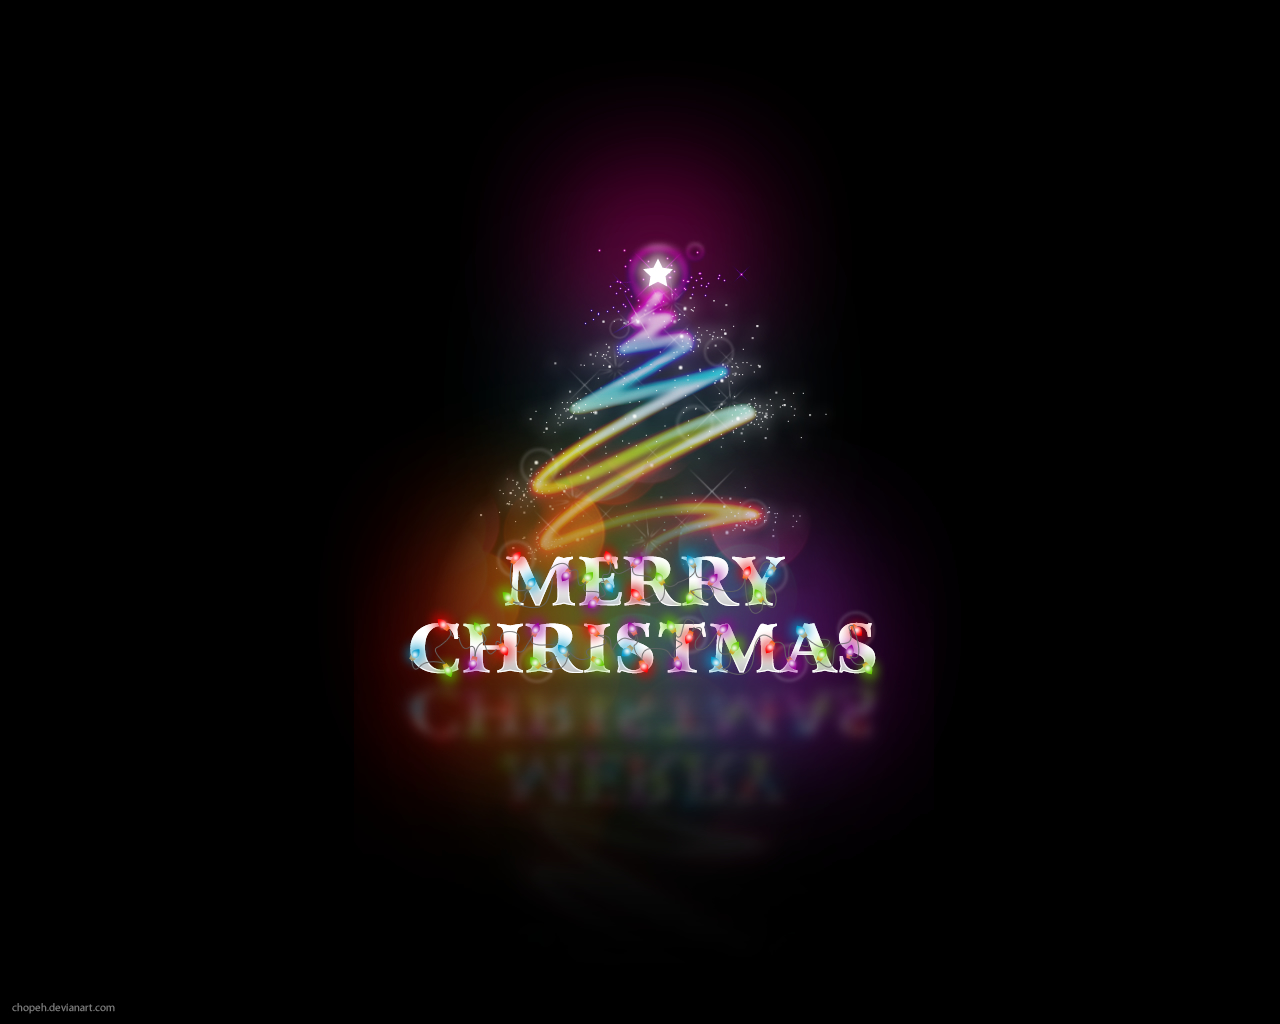 Happy Christmas Wallpapers | Happy Xmas Greetings